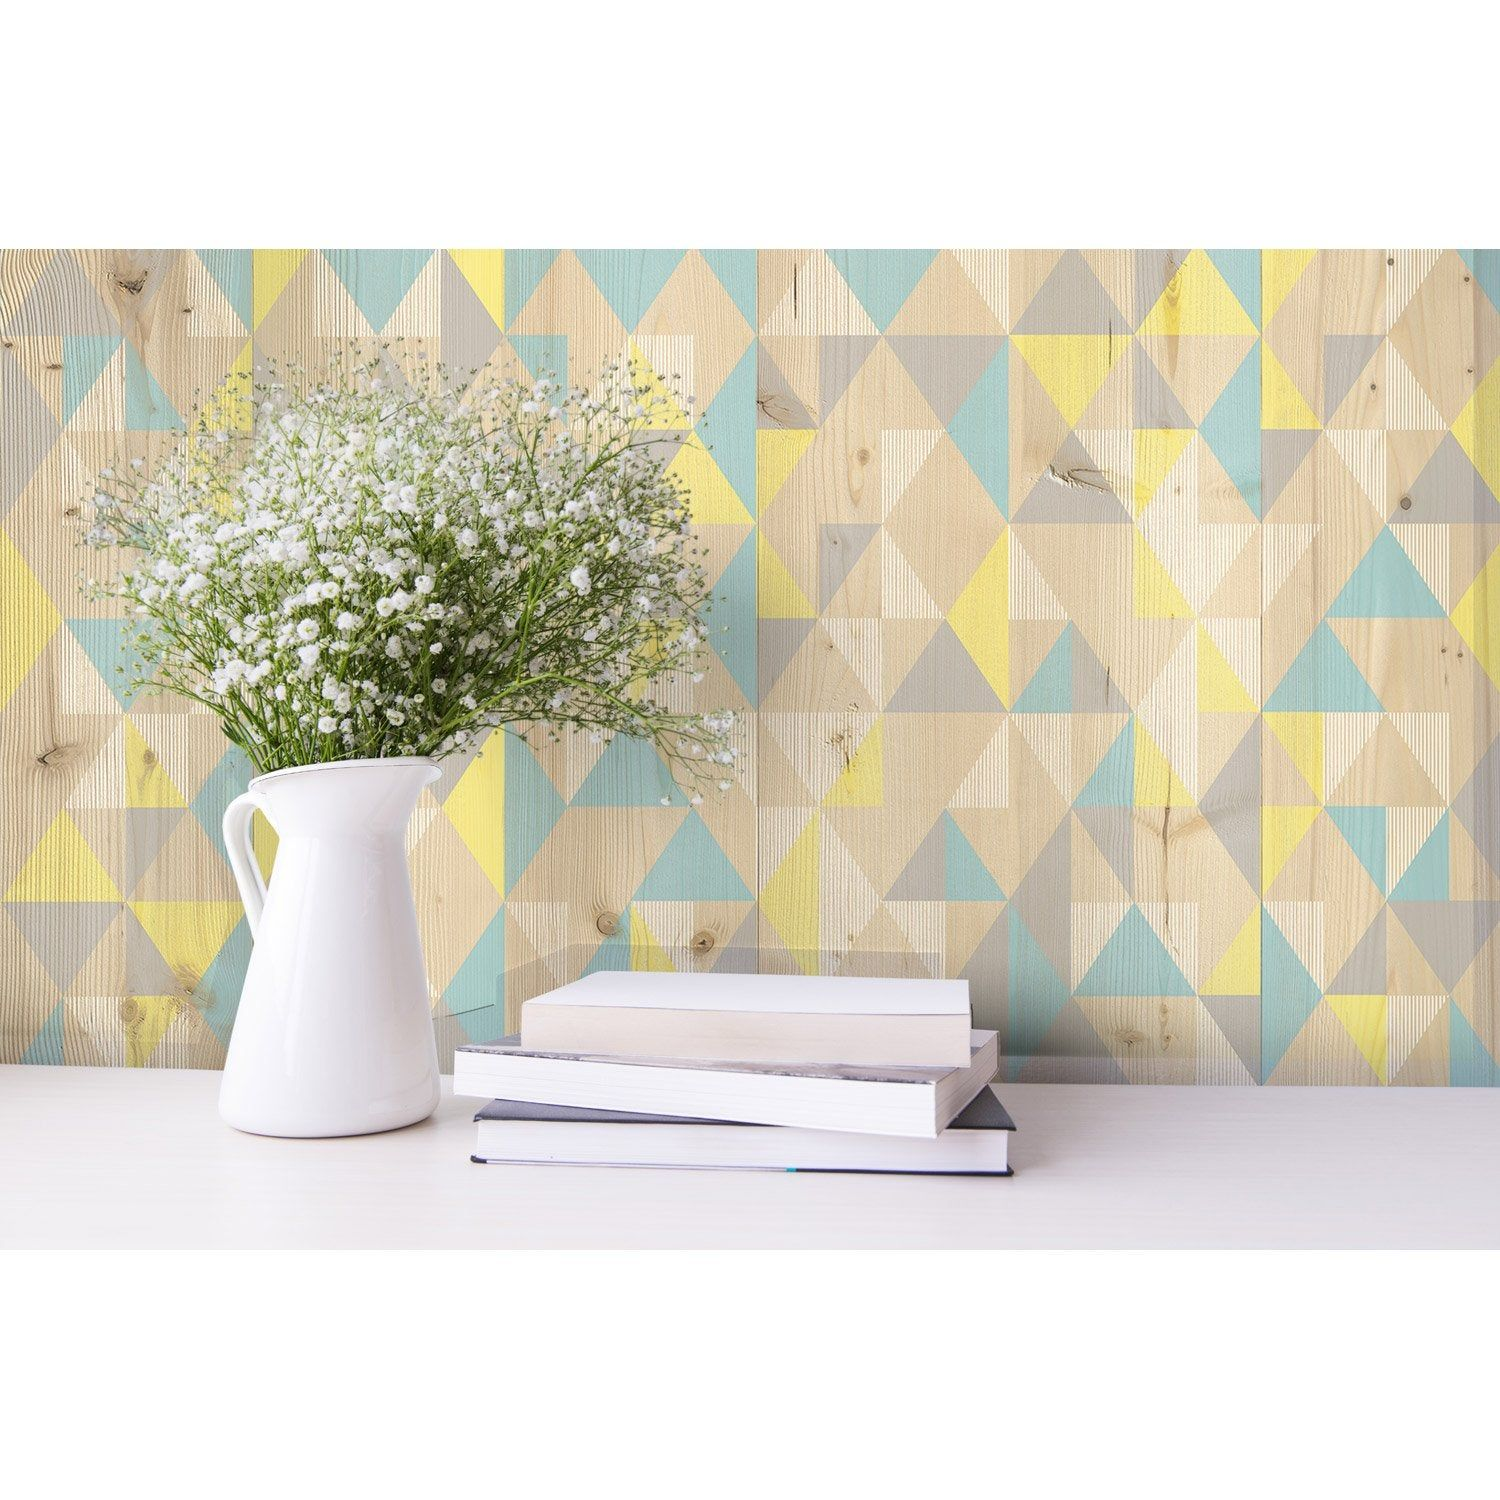 Lambris Pvc Decor Mural Bleu Jaune L 260 X L 37 5 2 925m Leroy Merlin Parement Mural Lambris Pvc Decoration Murale